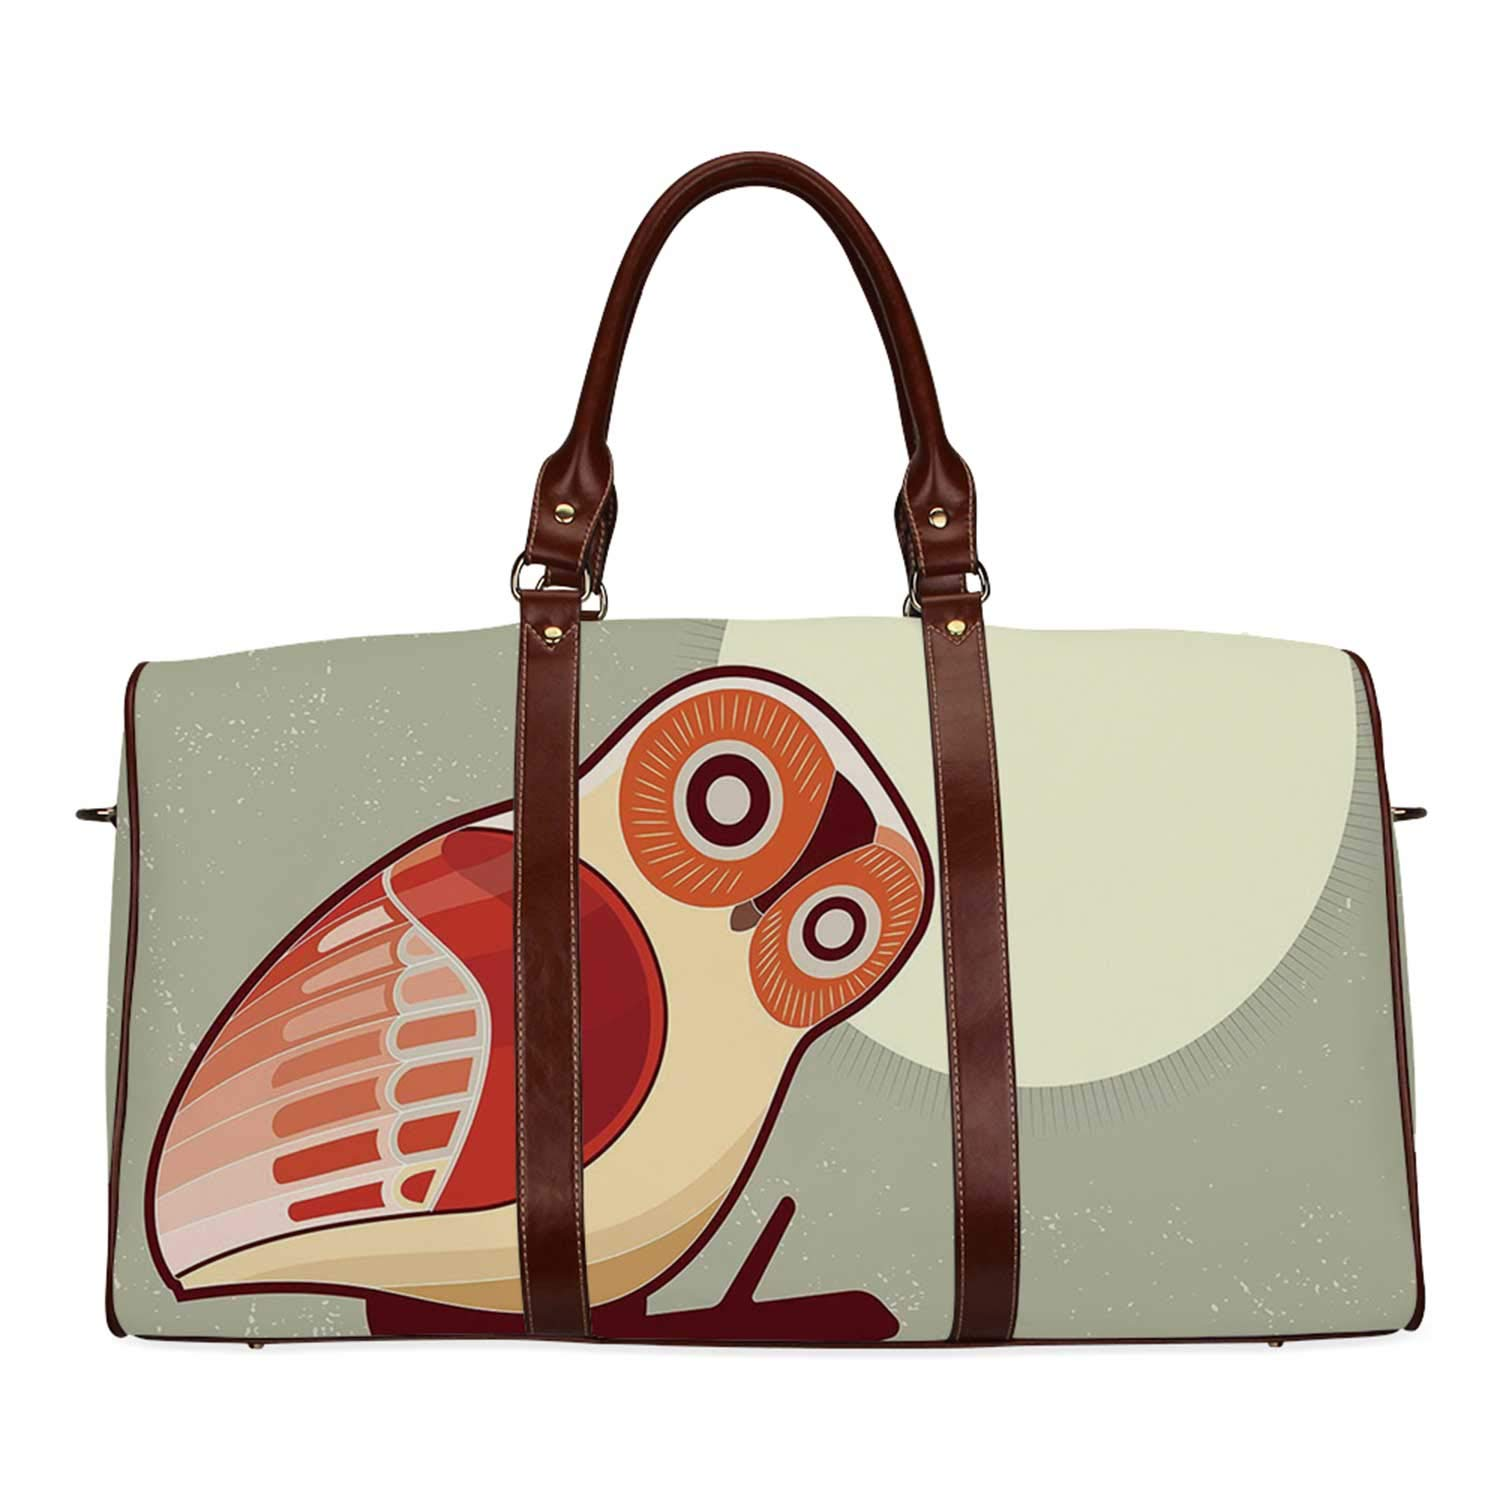 Owl Practicality Travel Bag,Full Moon Night with Nocturnal Large Eyed Animal on the Tree Branch Caricature Image Decorative for School,20.8''L x 12''W x 9.8''H by YOLIYANA